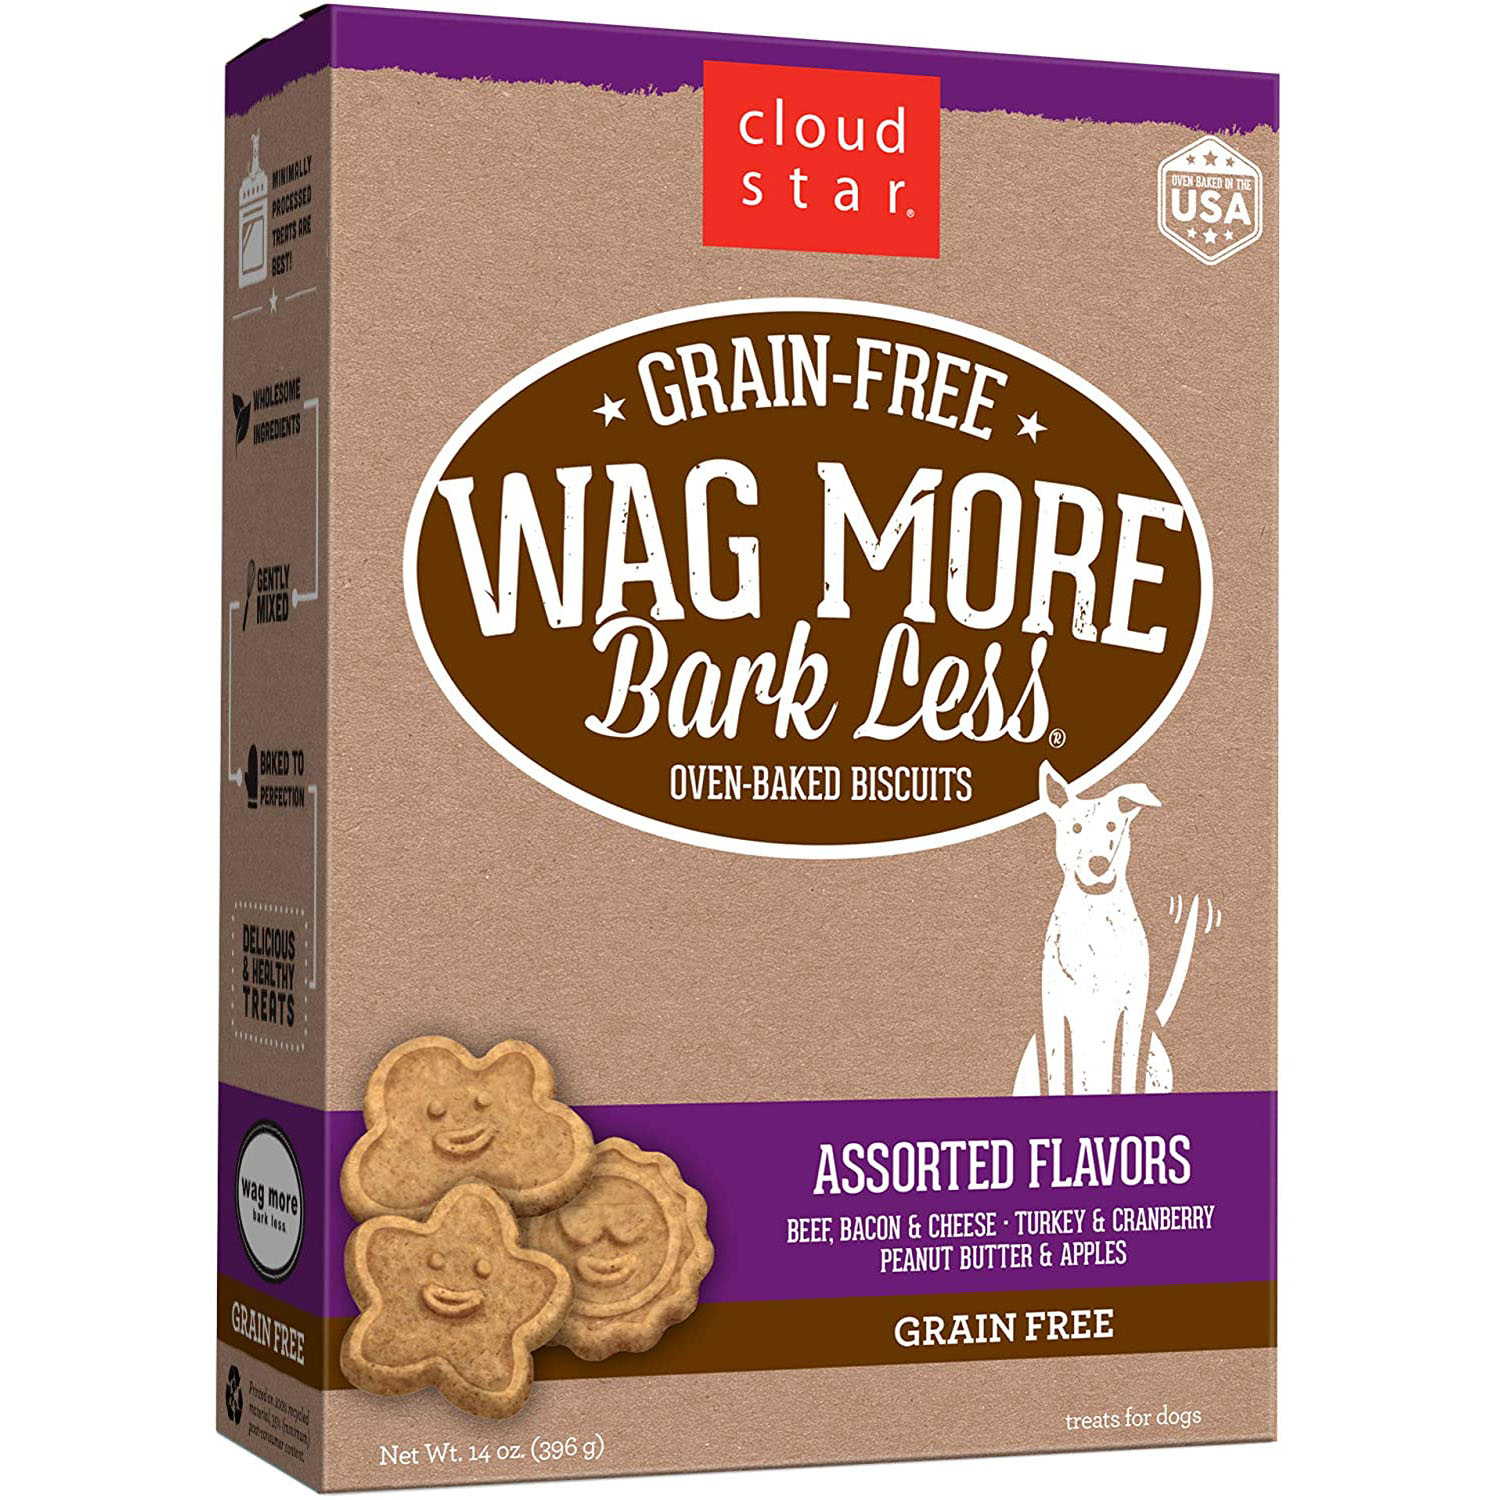 Cloud Star Wag More Bark Less Oven-Baked Biscuits Assorted Flavors